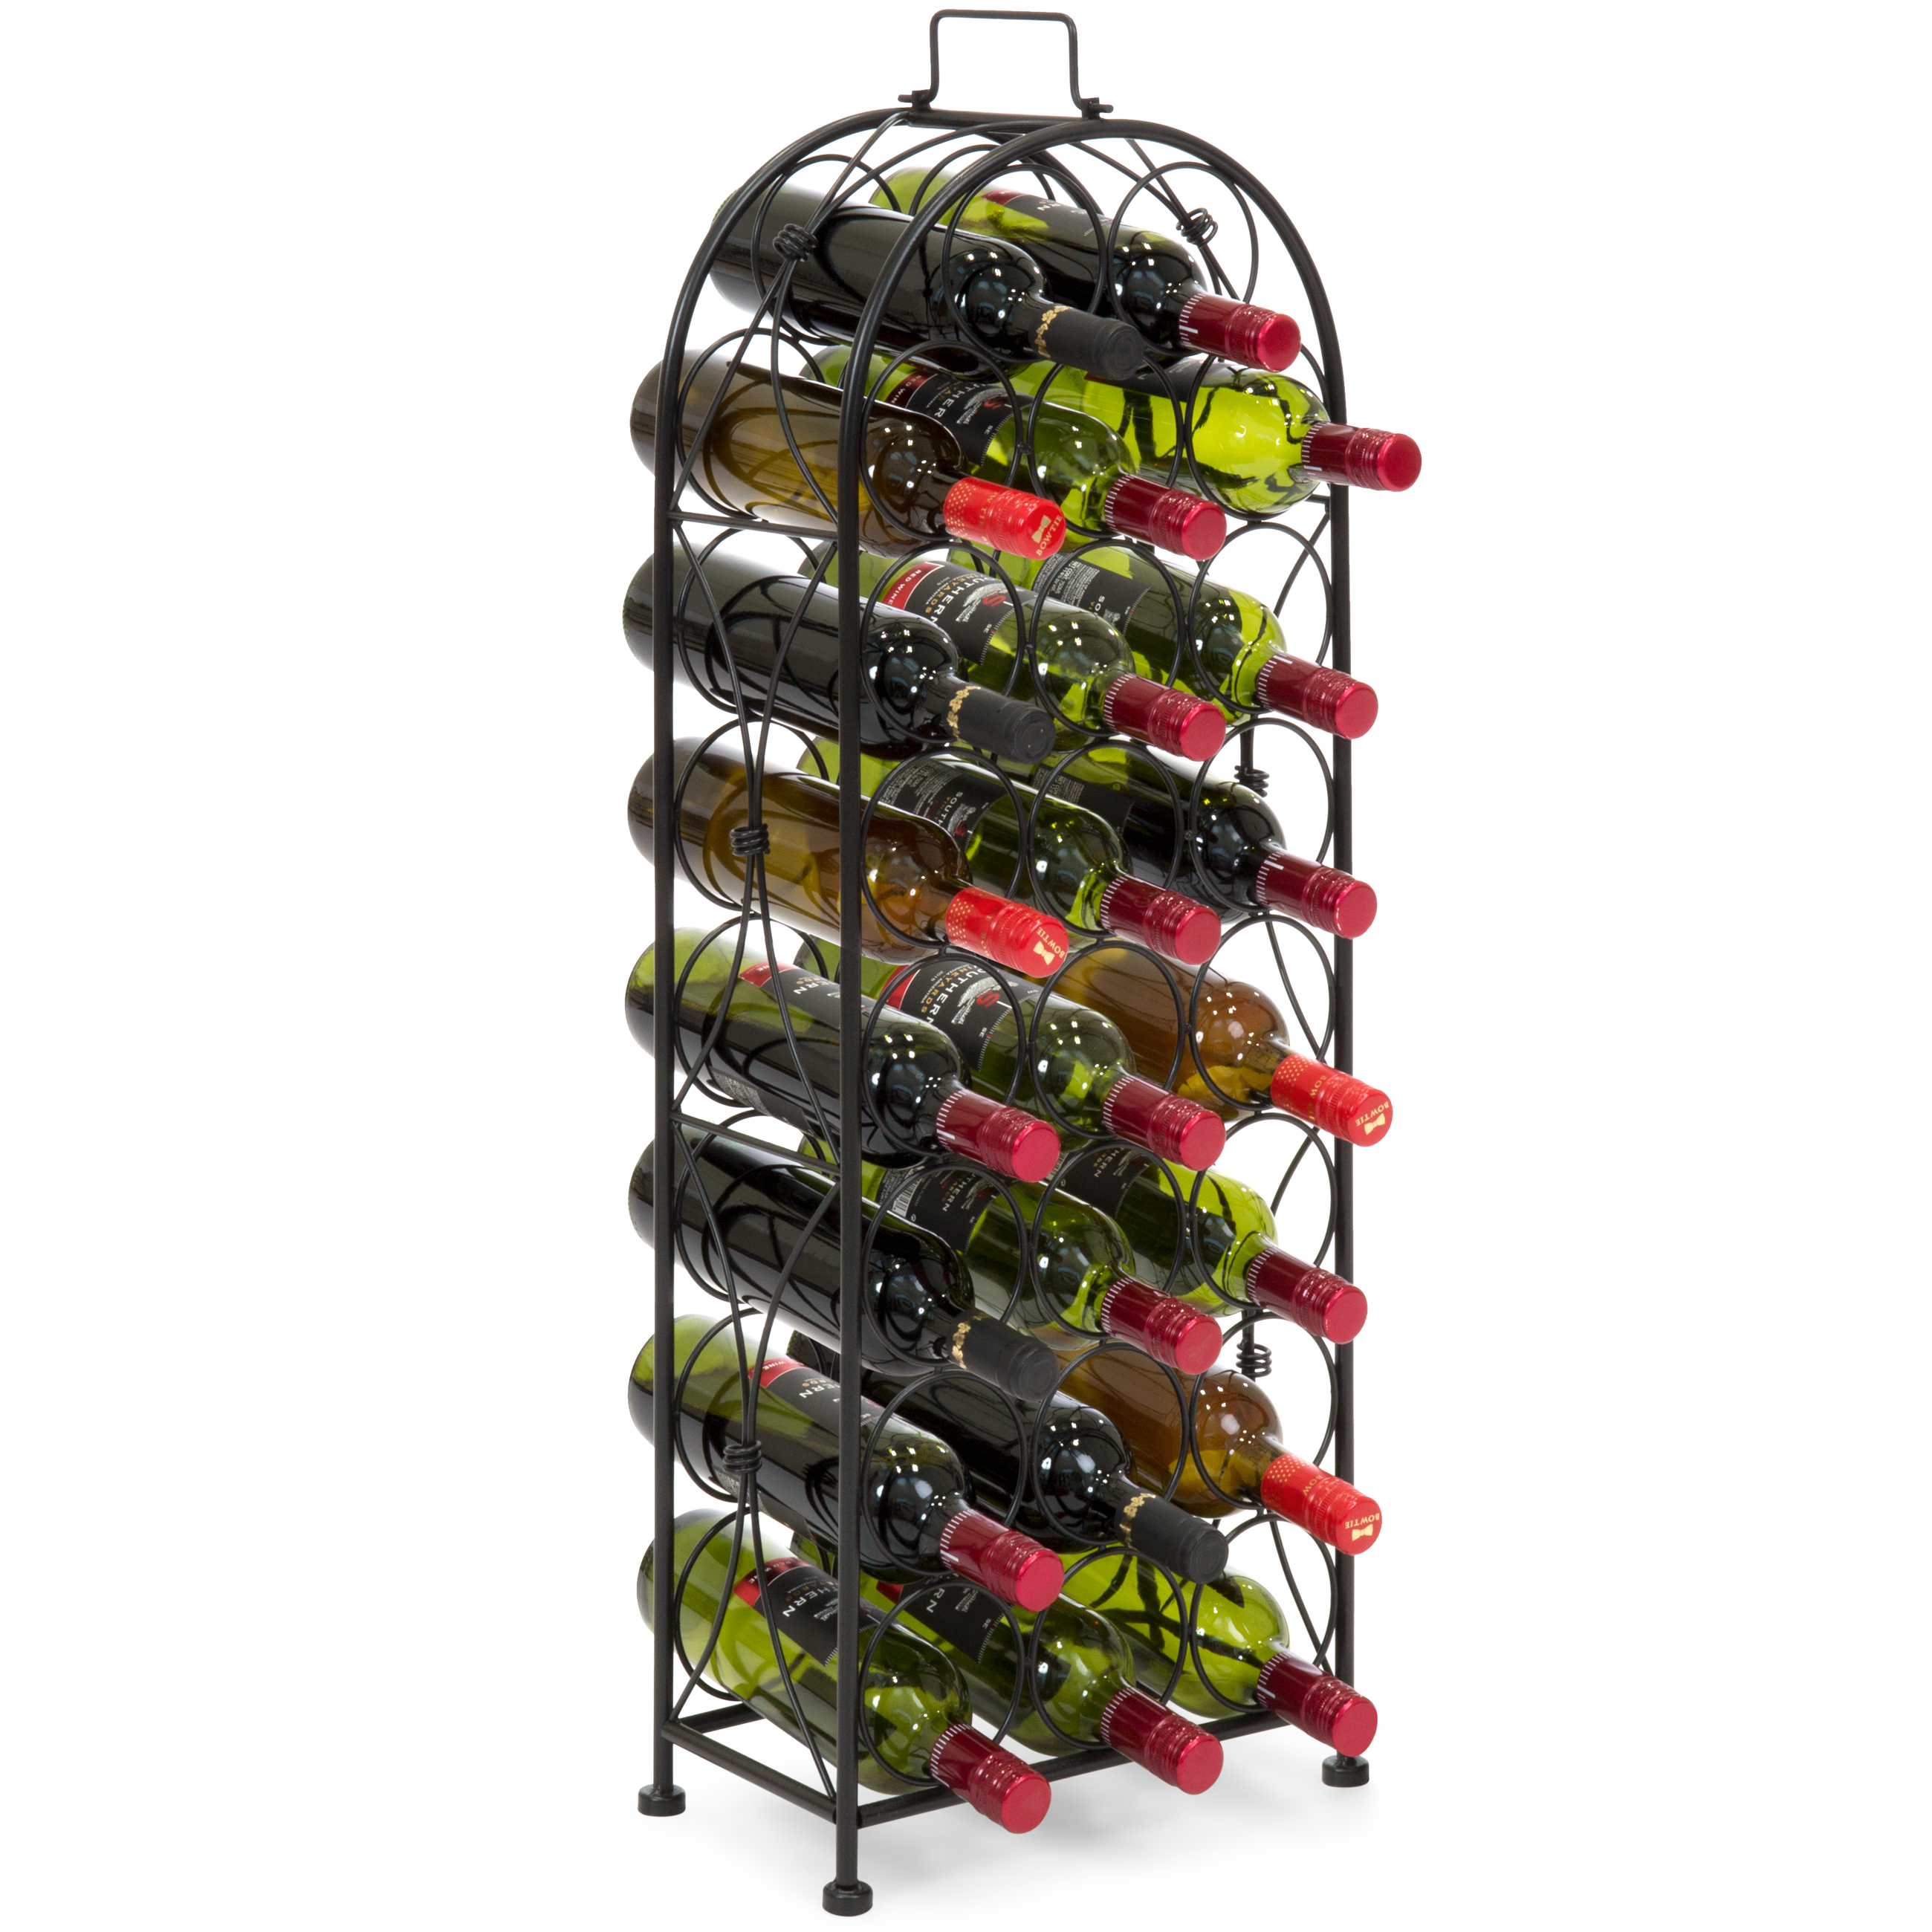 Standing Metal Wine Racks Best Choice Products 23 Bottle Metal Wine Rack Stand